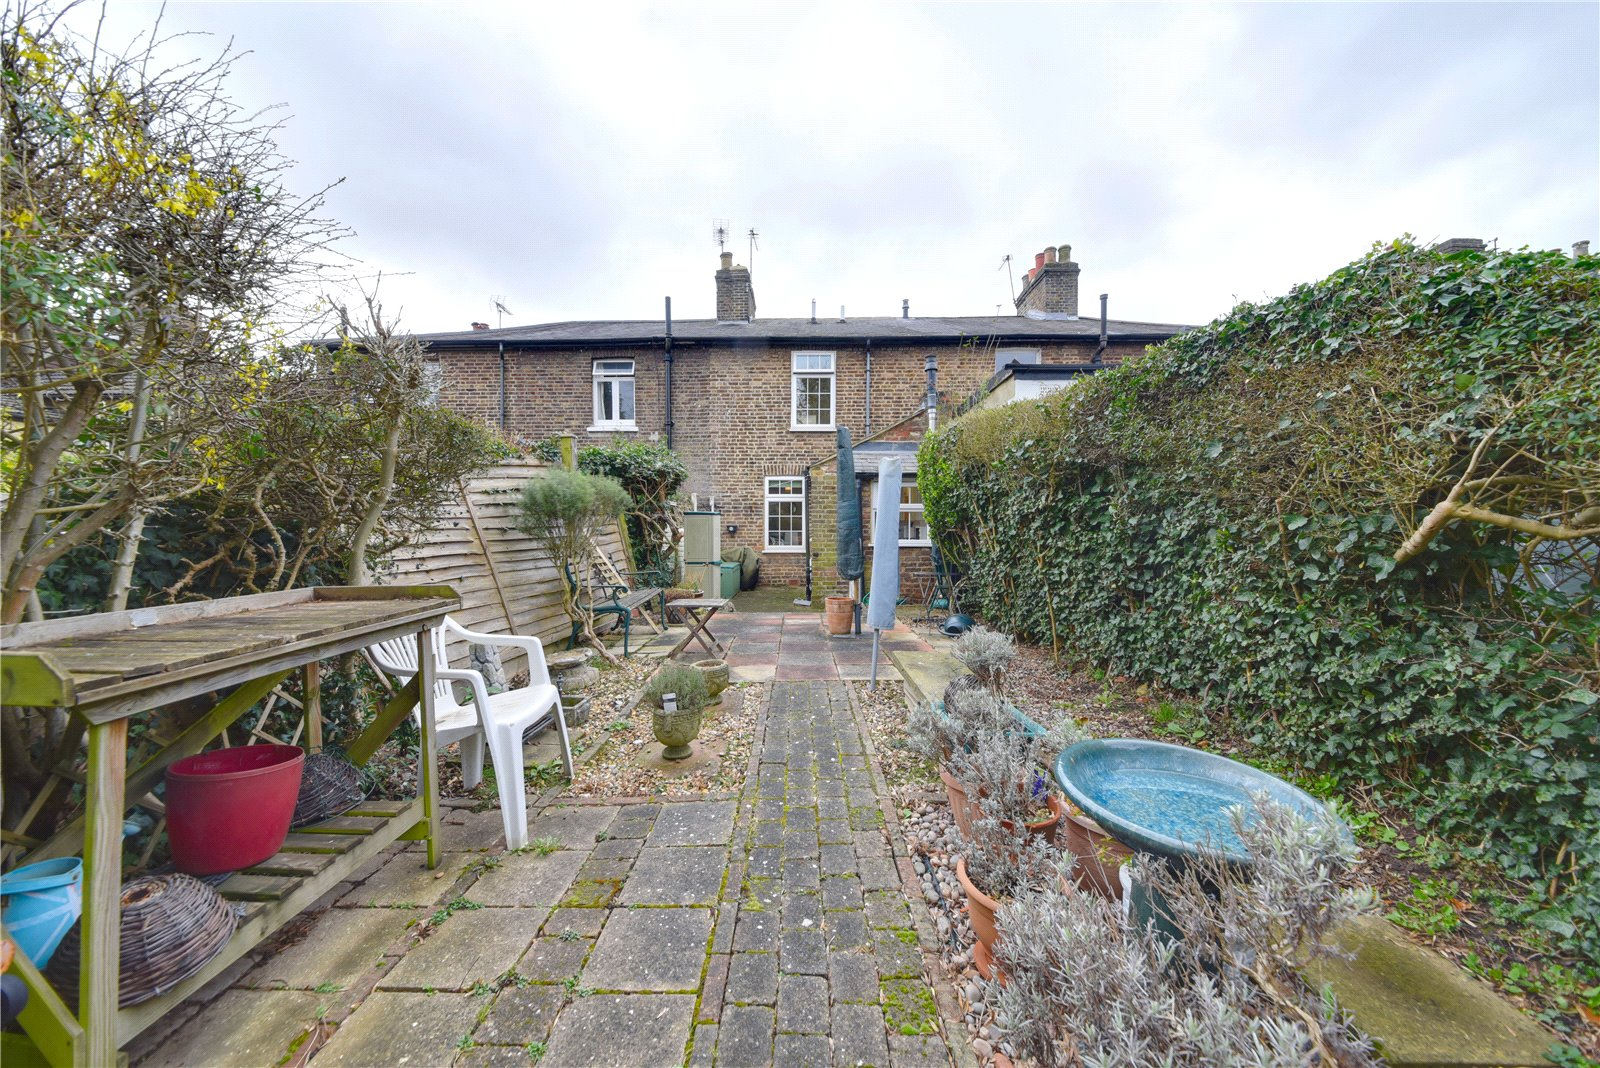 2 bed house for sale in London, N12 9JN  - Property Image 6